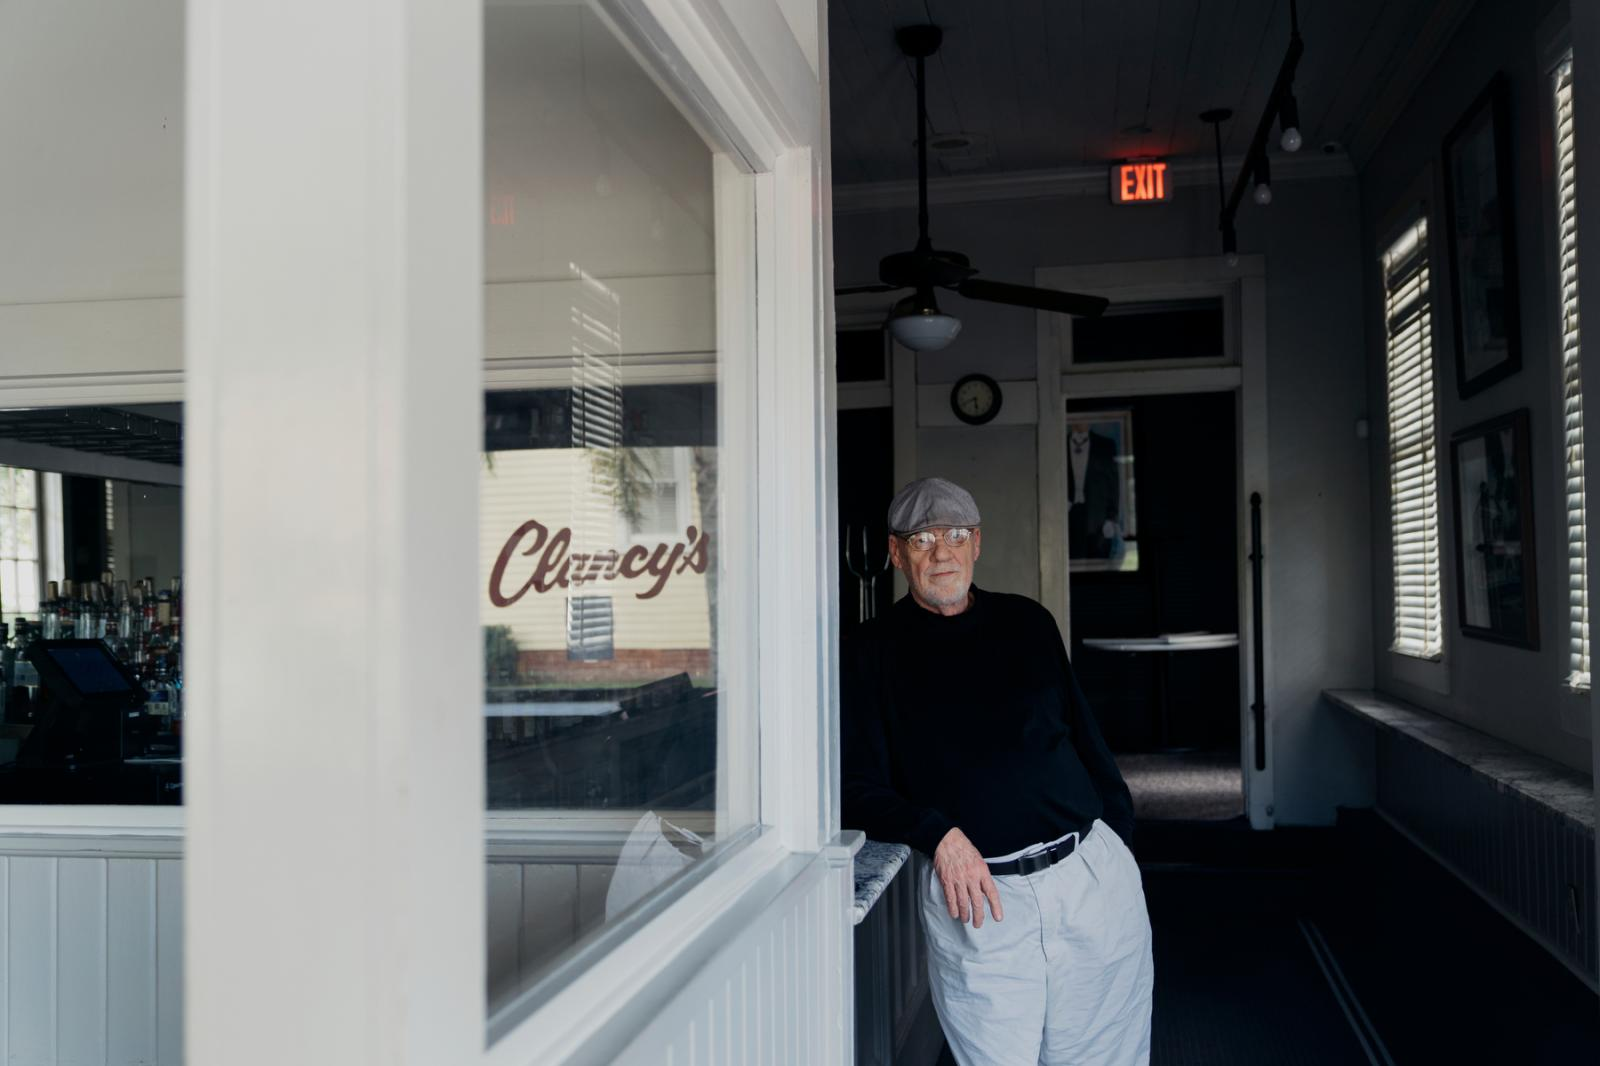 Brad Hollingsworth, owner of Clancy�s, poses for a portrait on March 27, 2020. (Annie Flanagan for The New York Times)